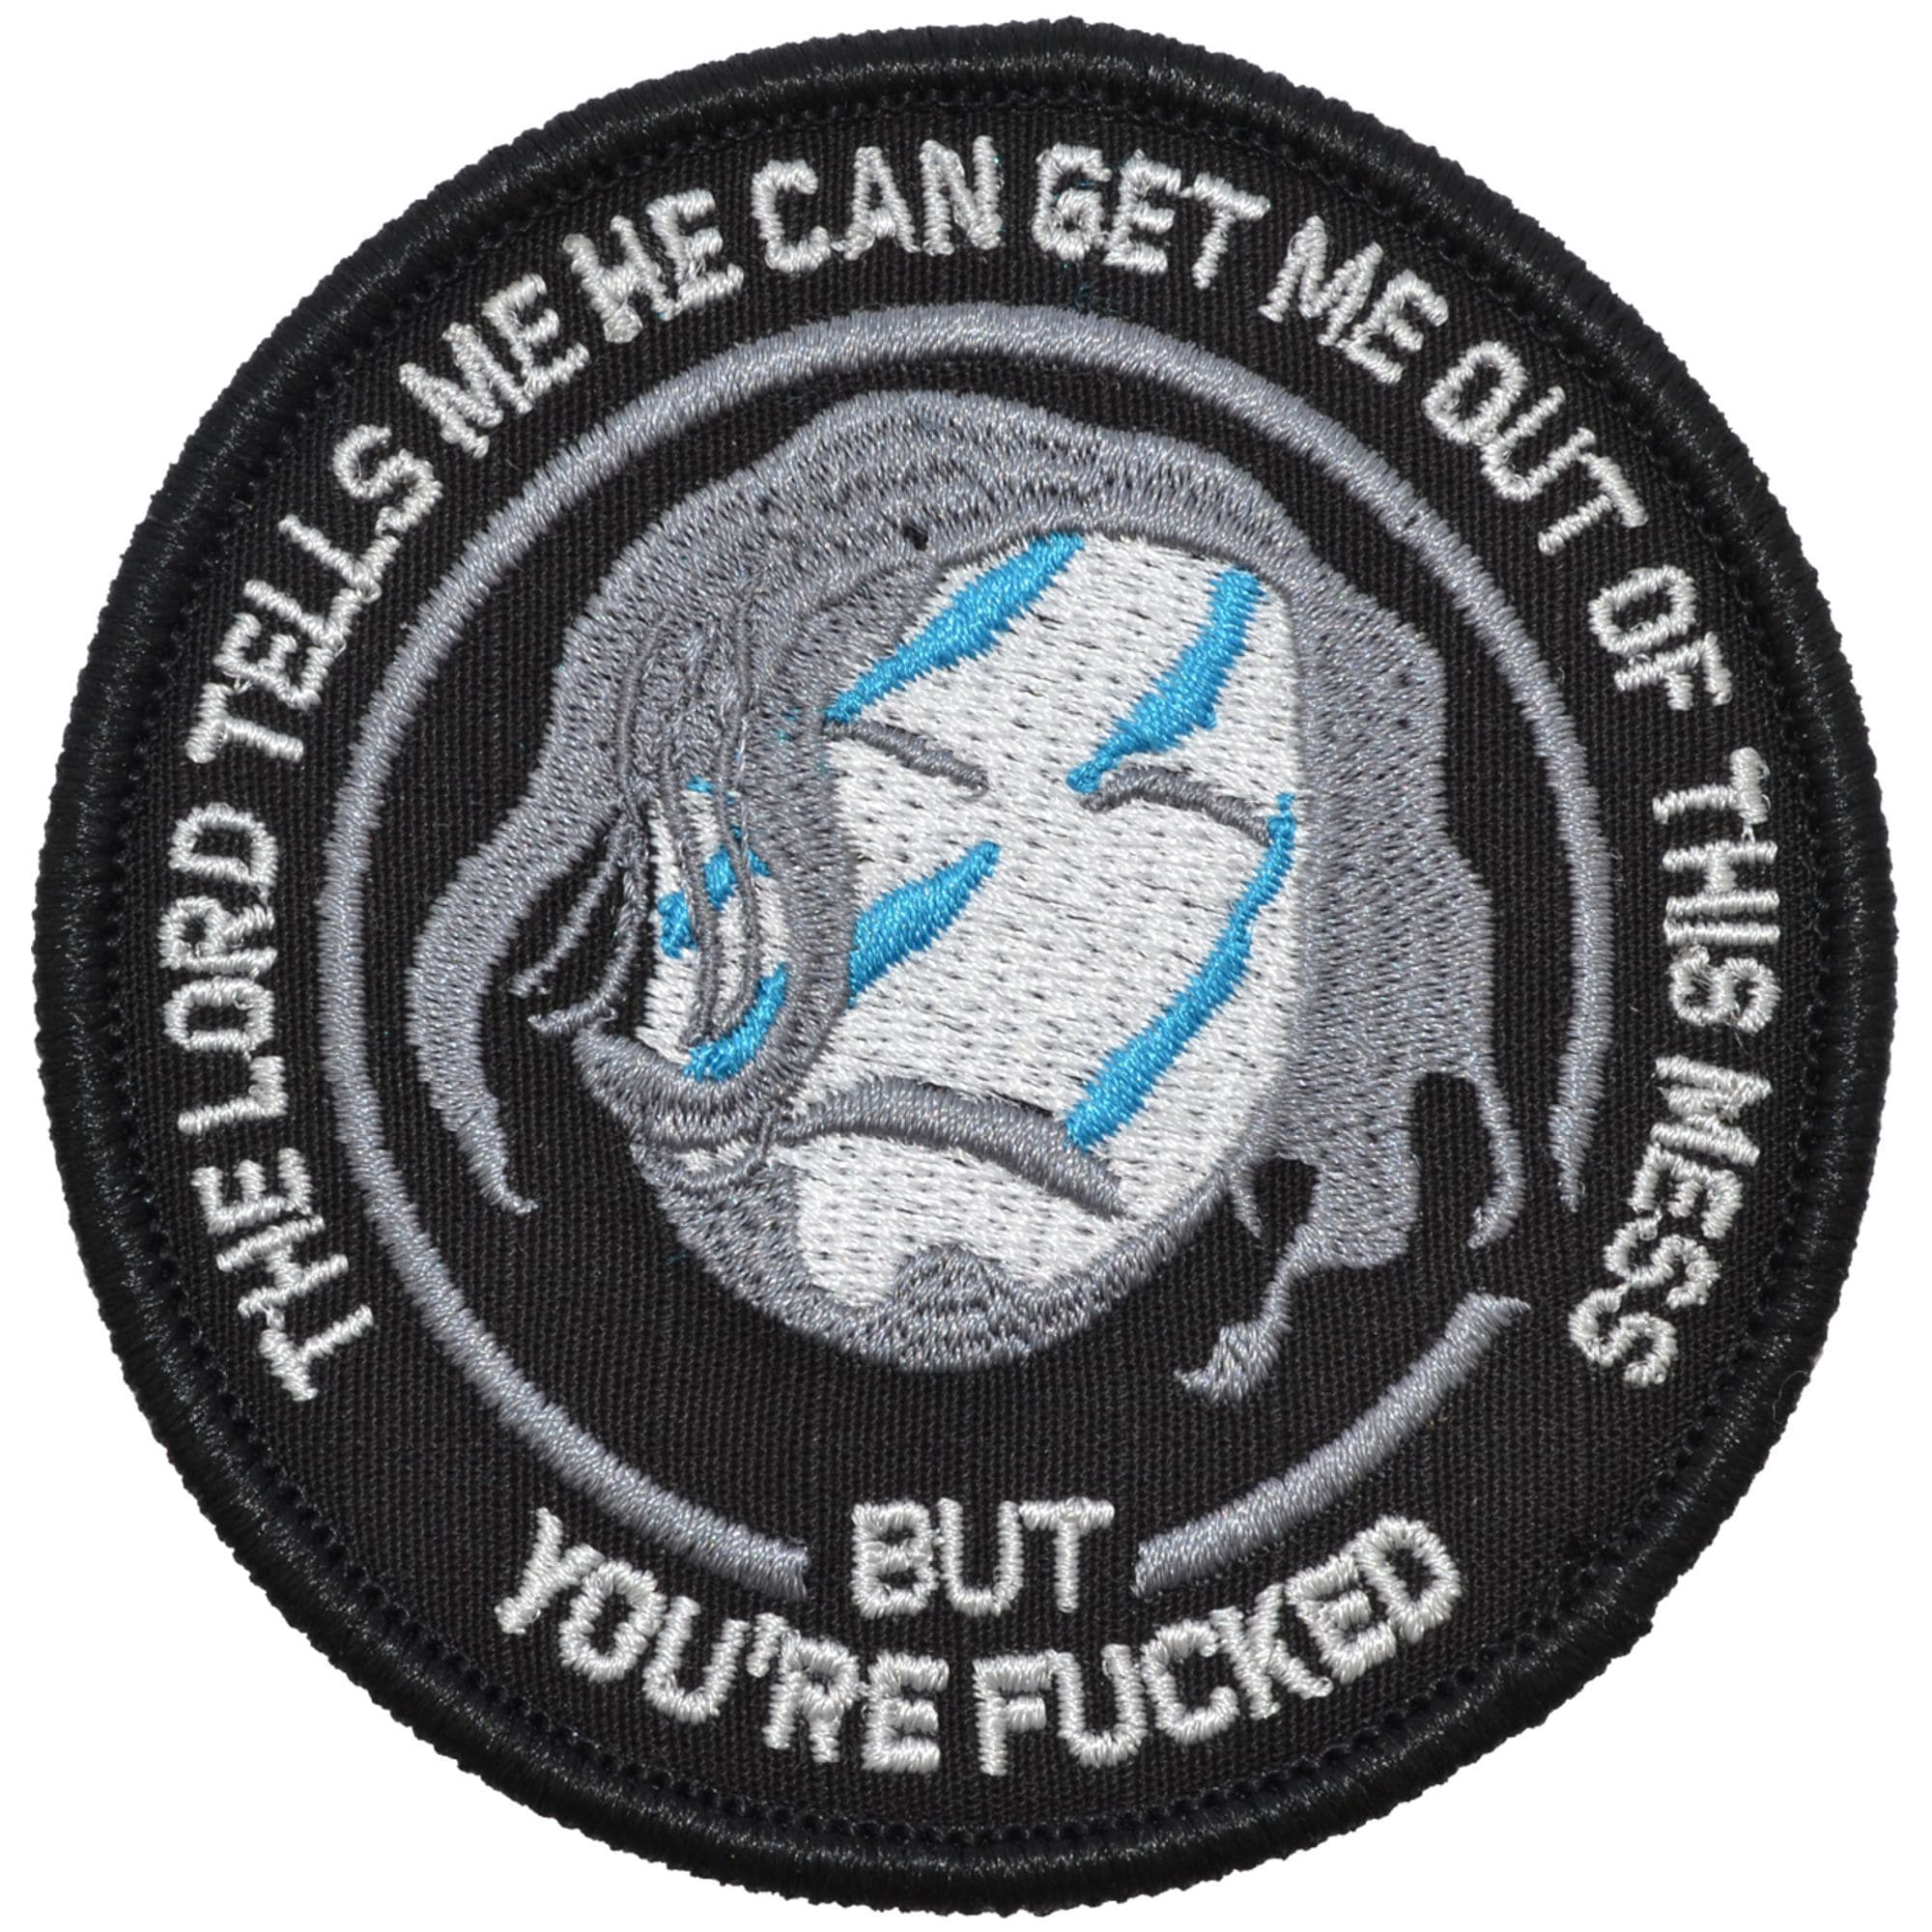 Tactical Gear Junkie Patches Black The Lord Tells Me He Can Get Me Out Of This Mess - 3.5 inch Round Patch